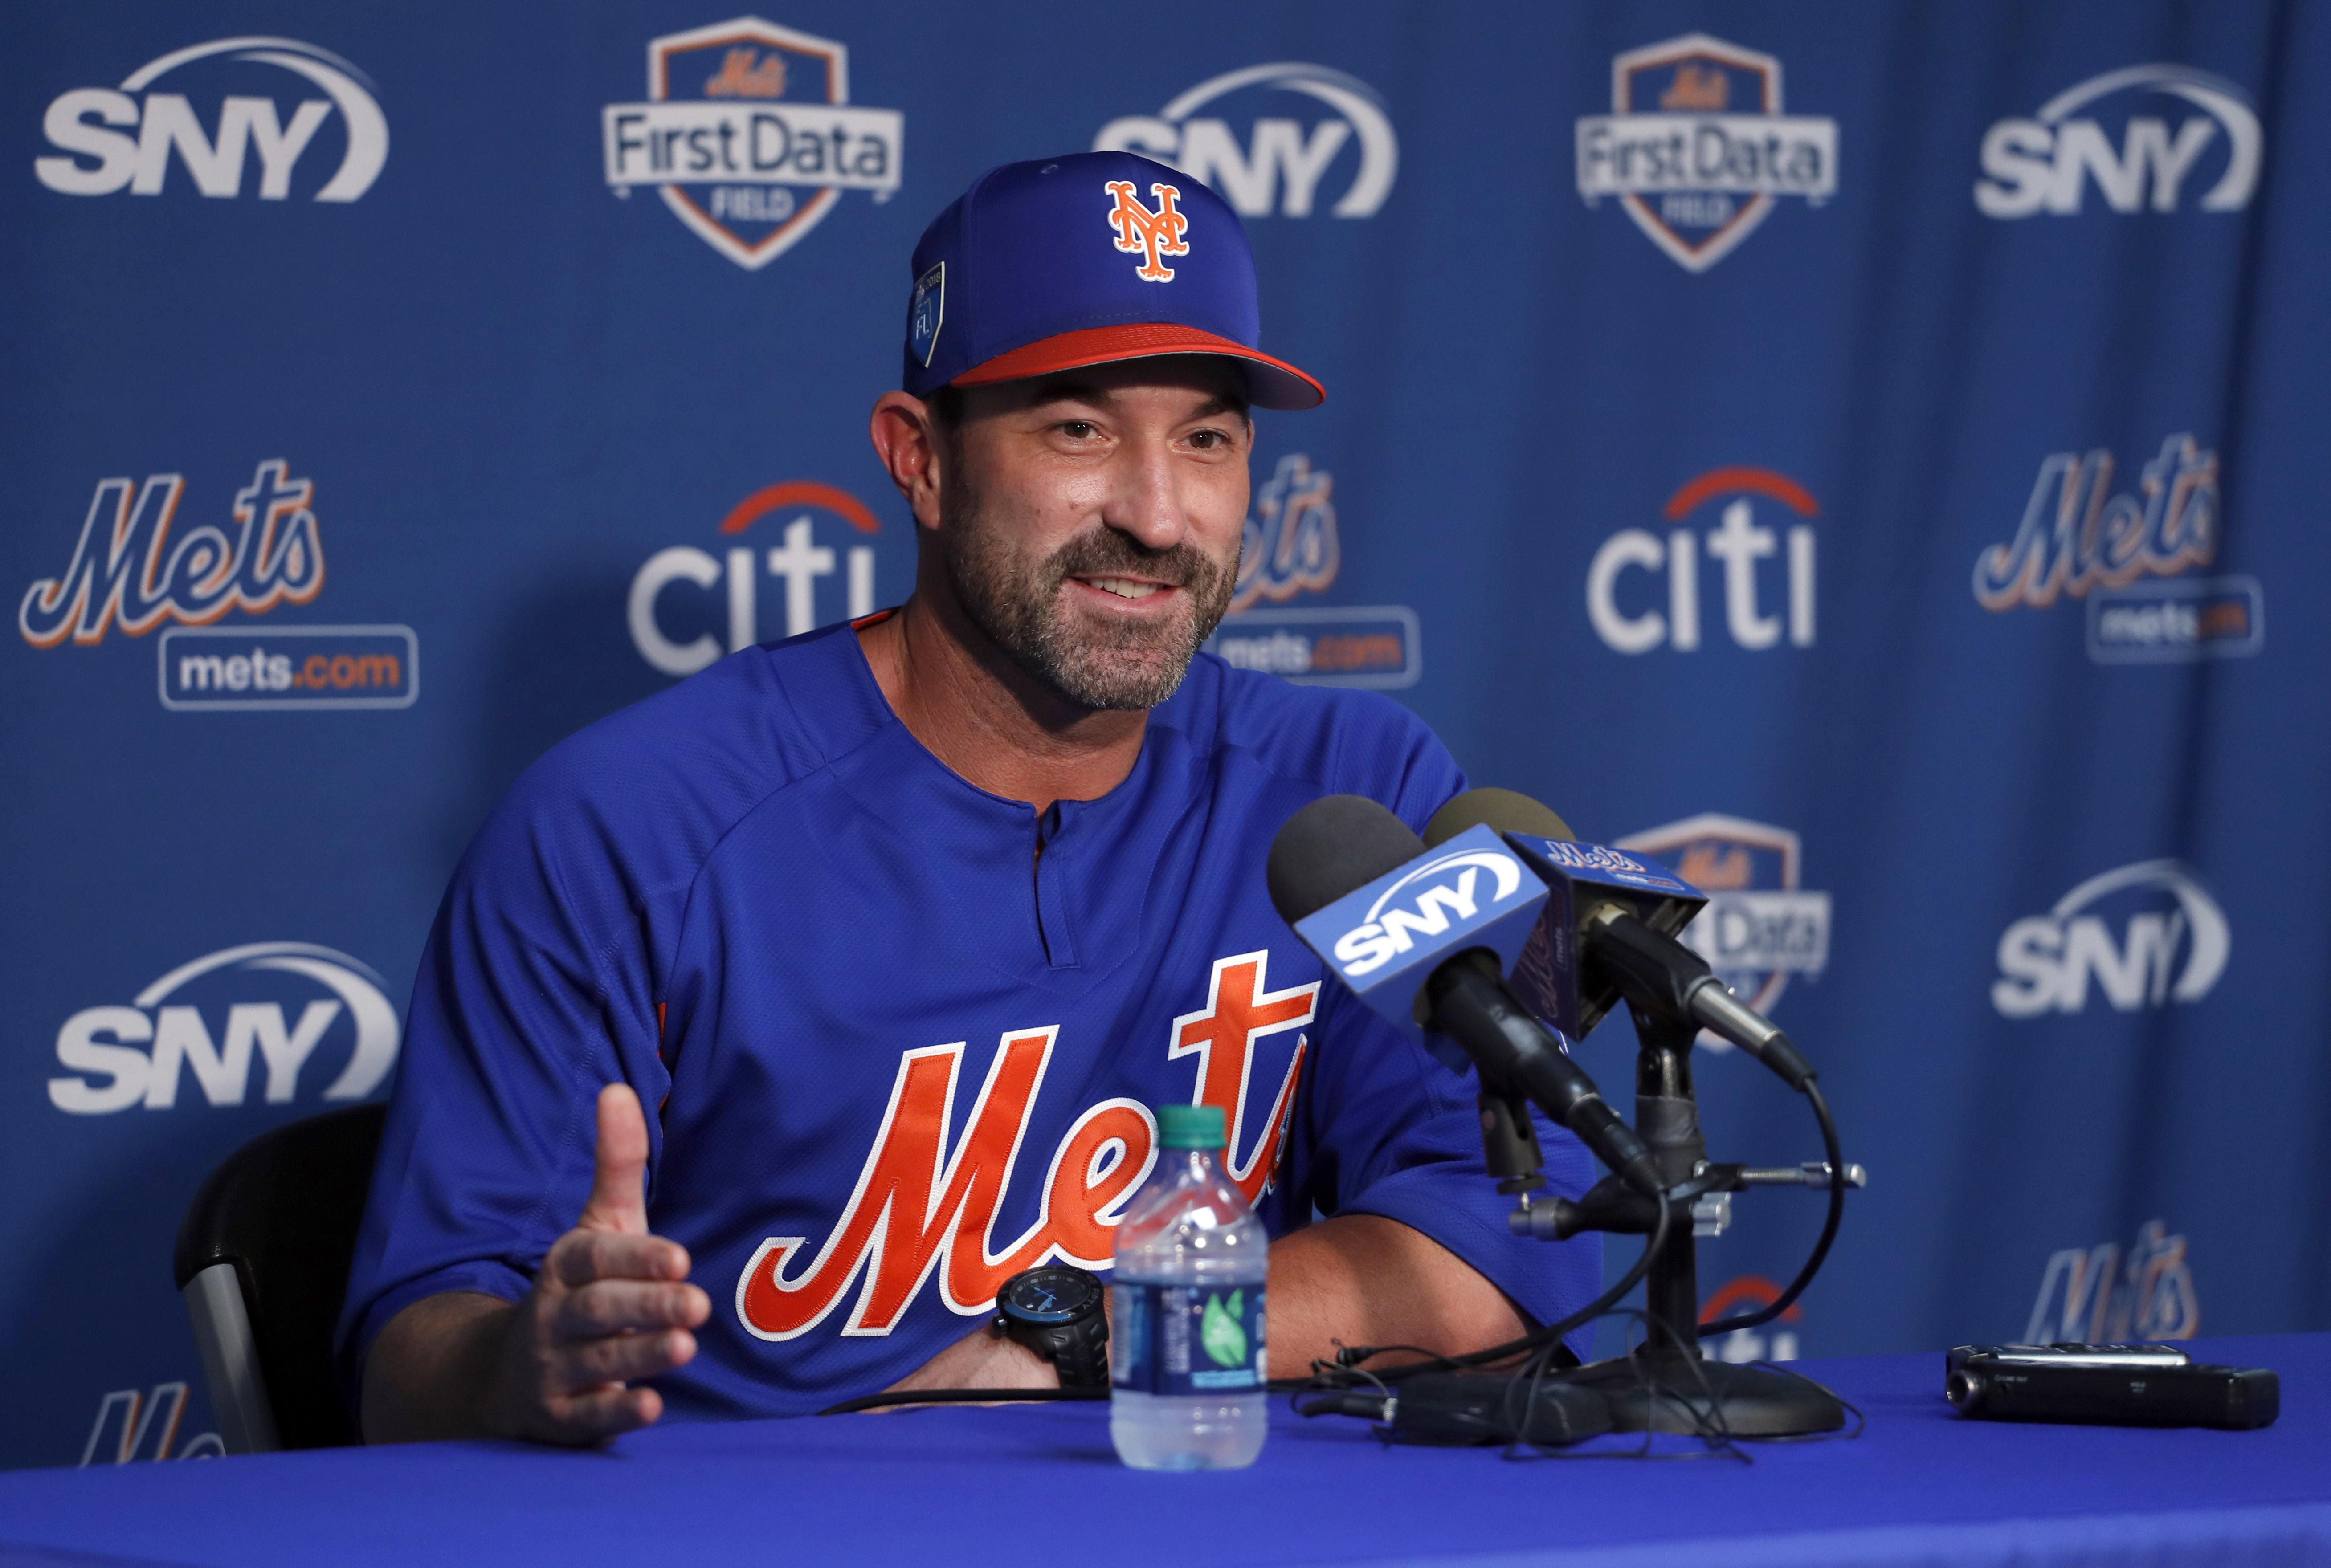 ce840b2d570 New York Mets manager Mickey Callaway speaks during a news conference ahead  of the official start